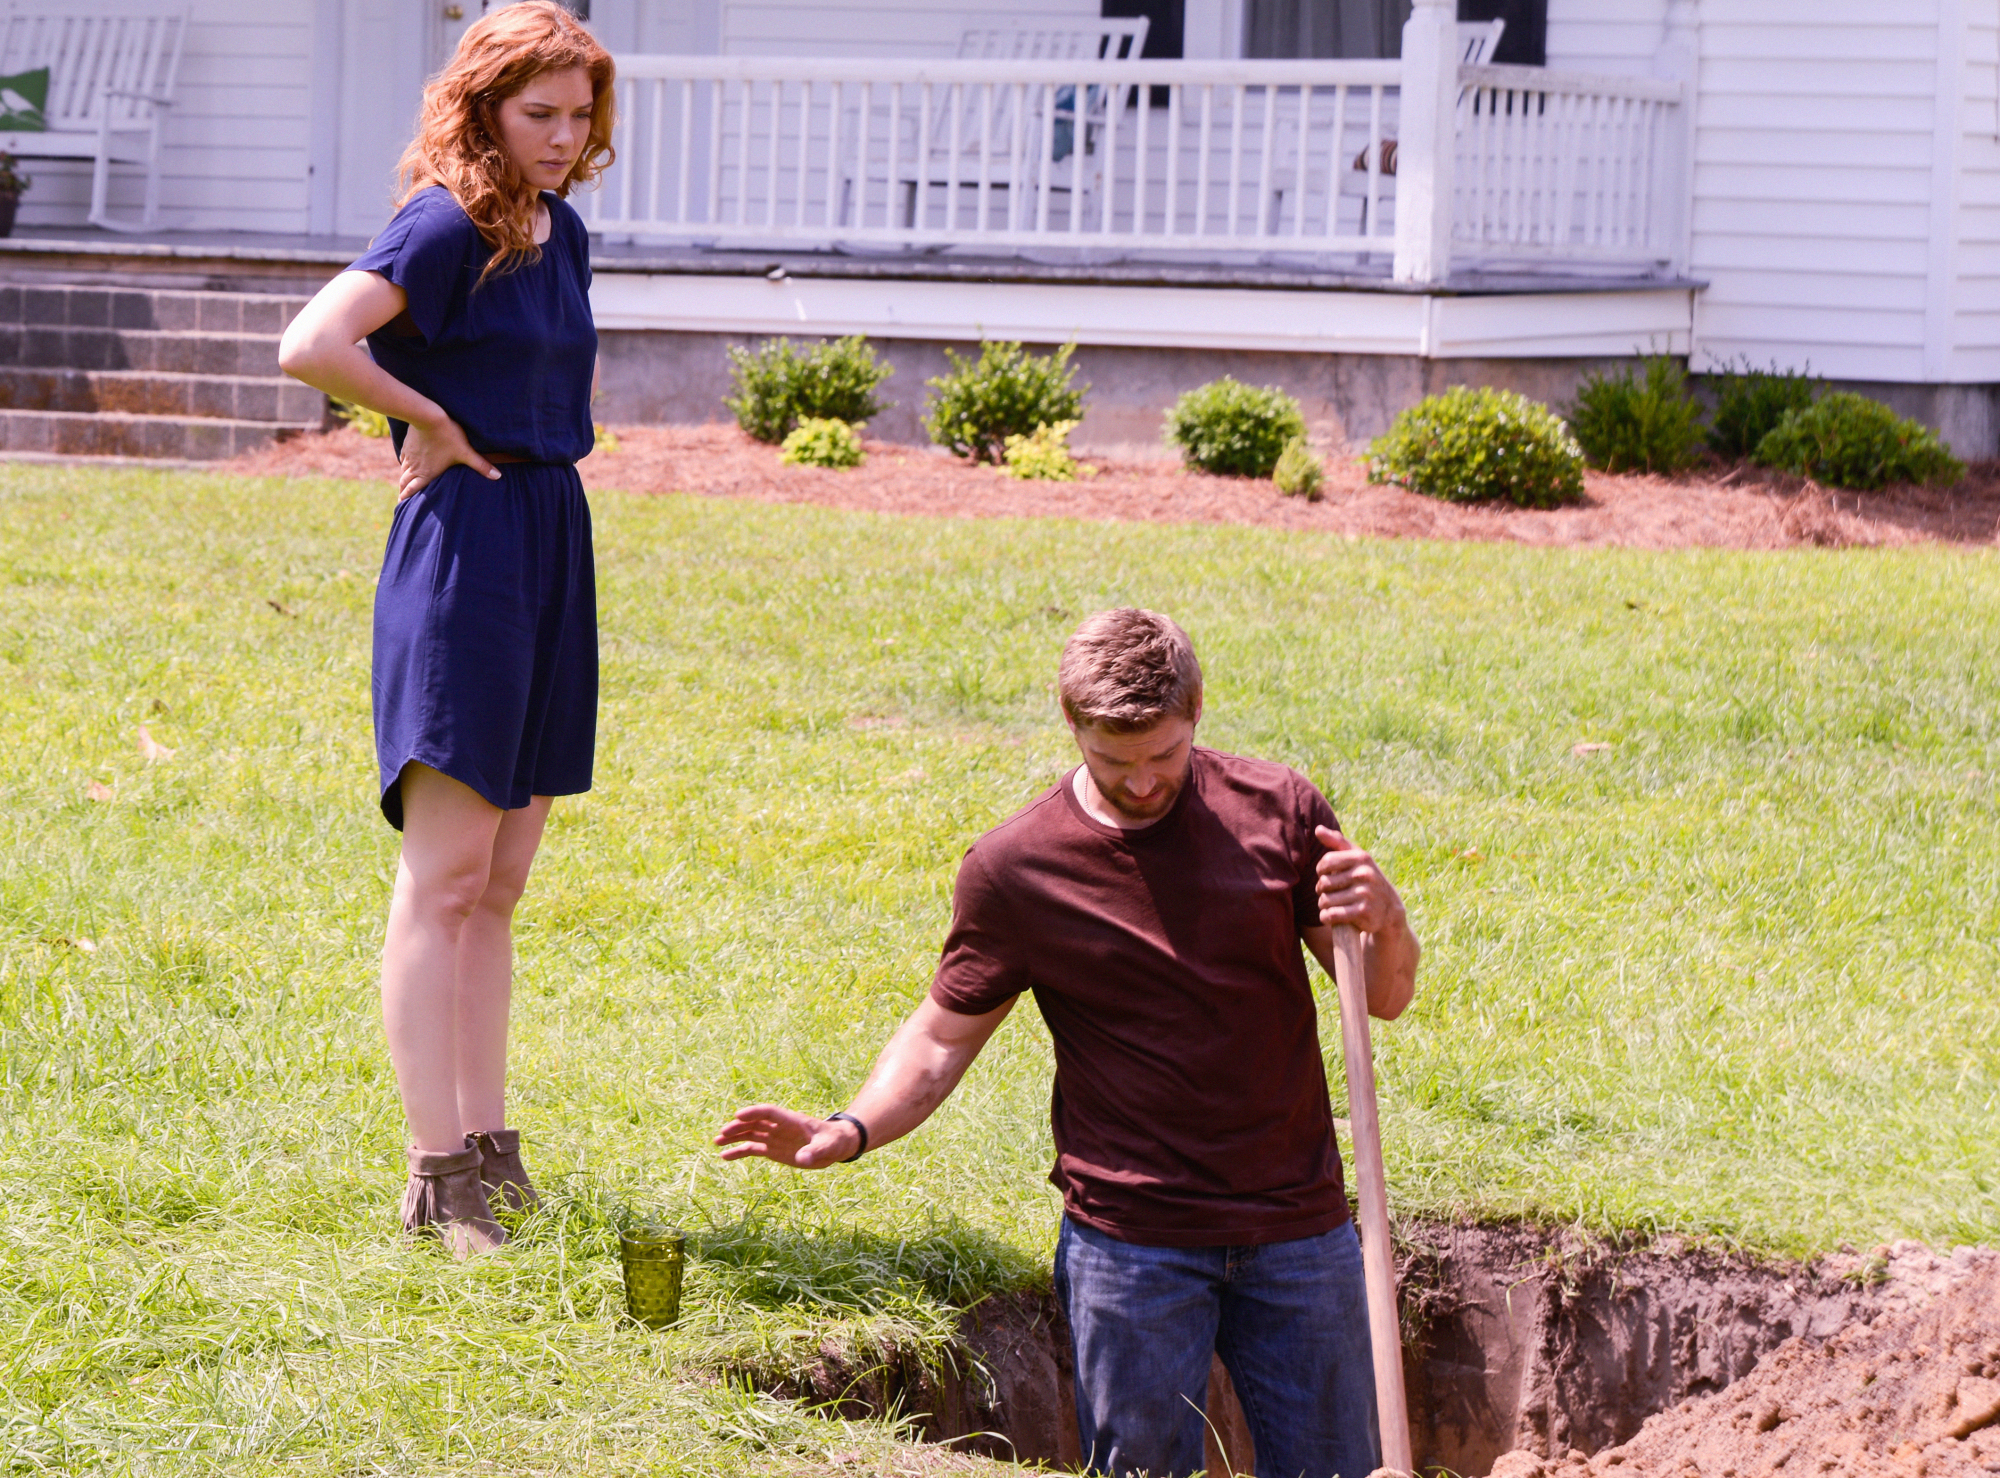 8. When they dug a hole together